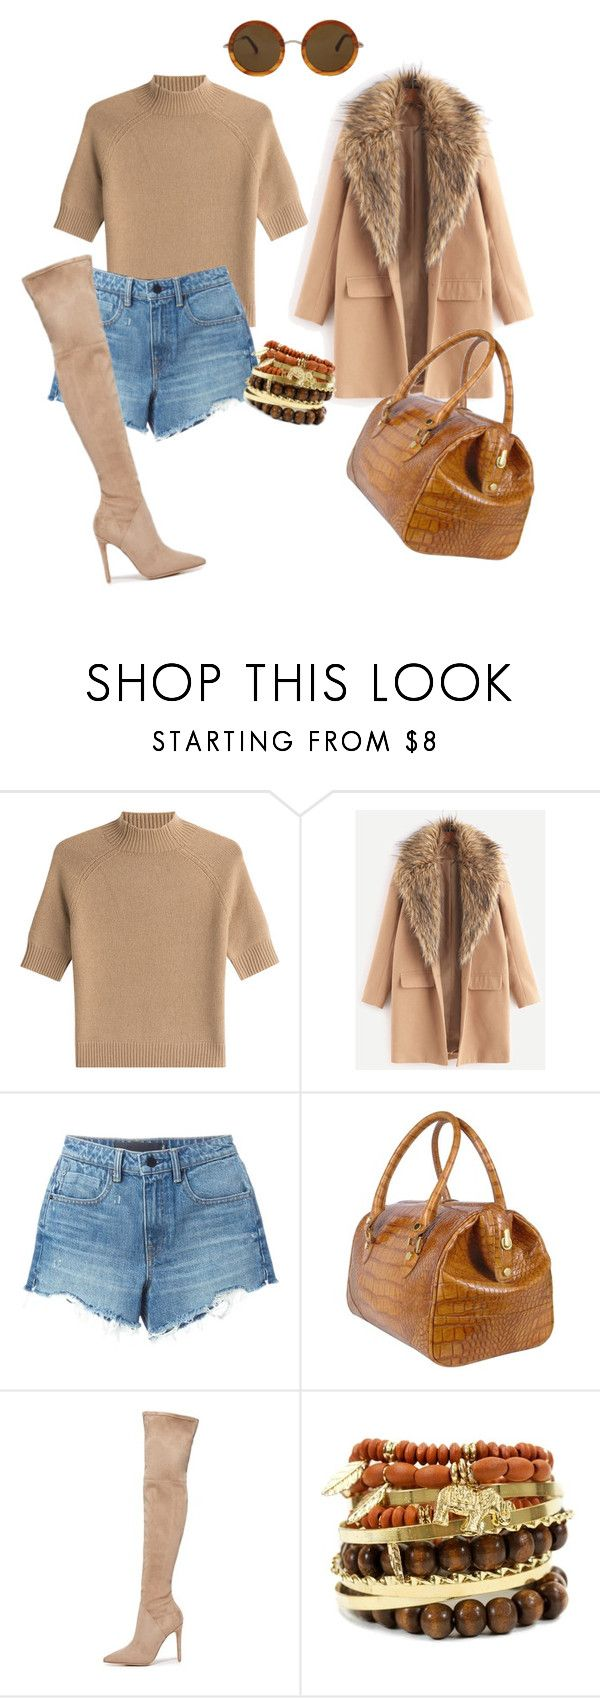 """""""Başlıksız #424"""" by ayse-zilee ❤ liked on Polyvore featuring Theory, Alexander Wang, L.A.P.A., Kendall + Kylie and The Row"""